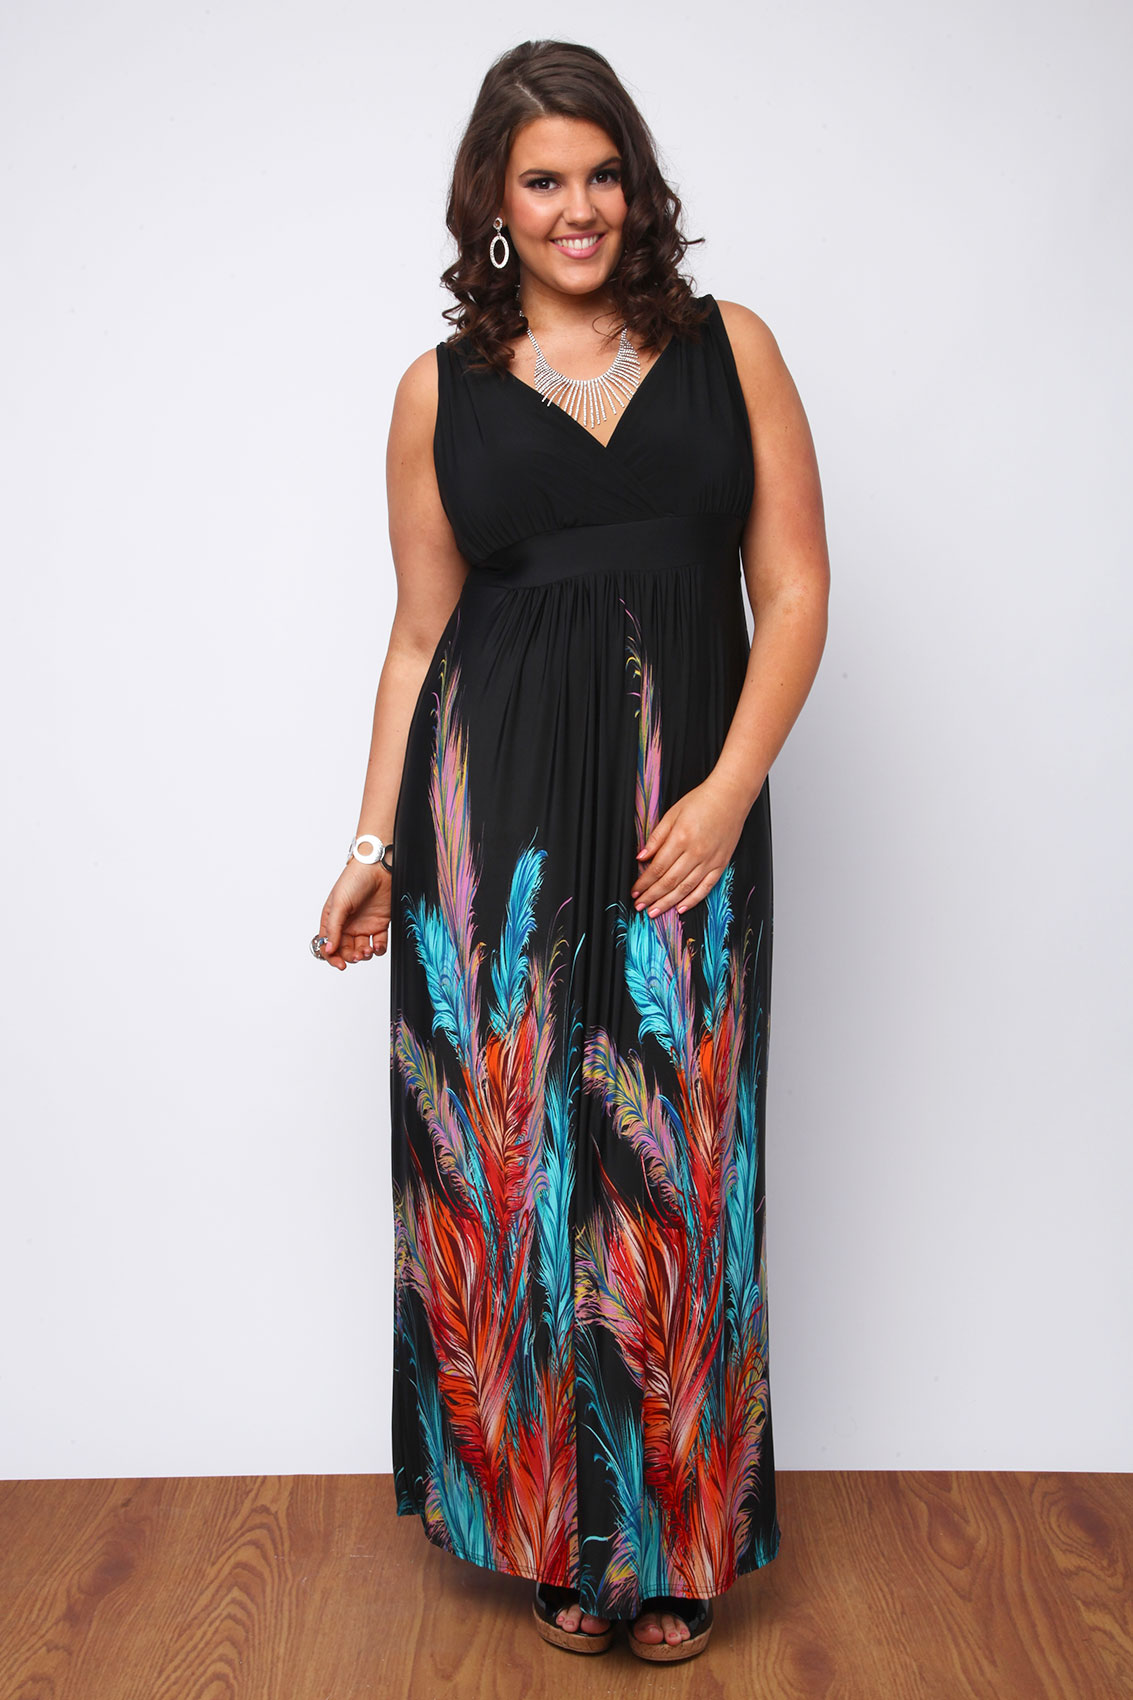 Orange and blue plus size dress